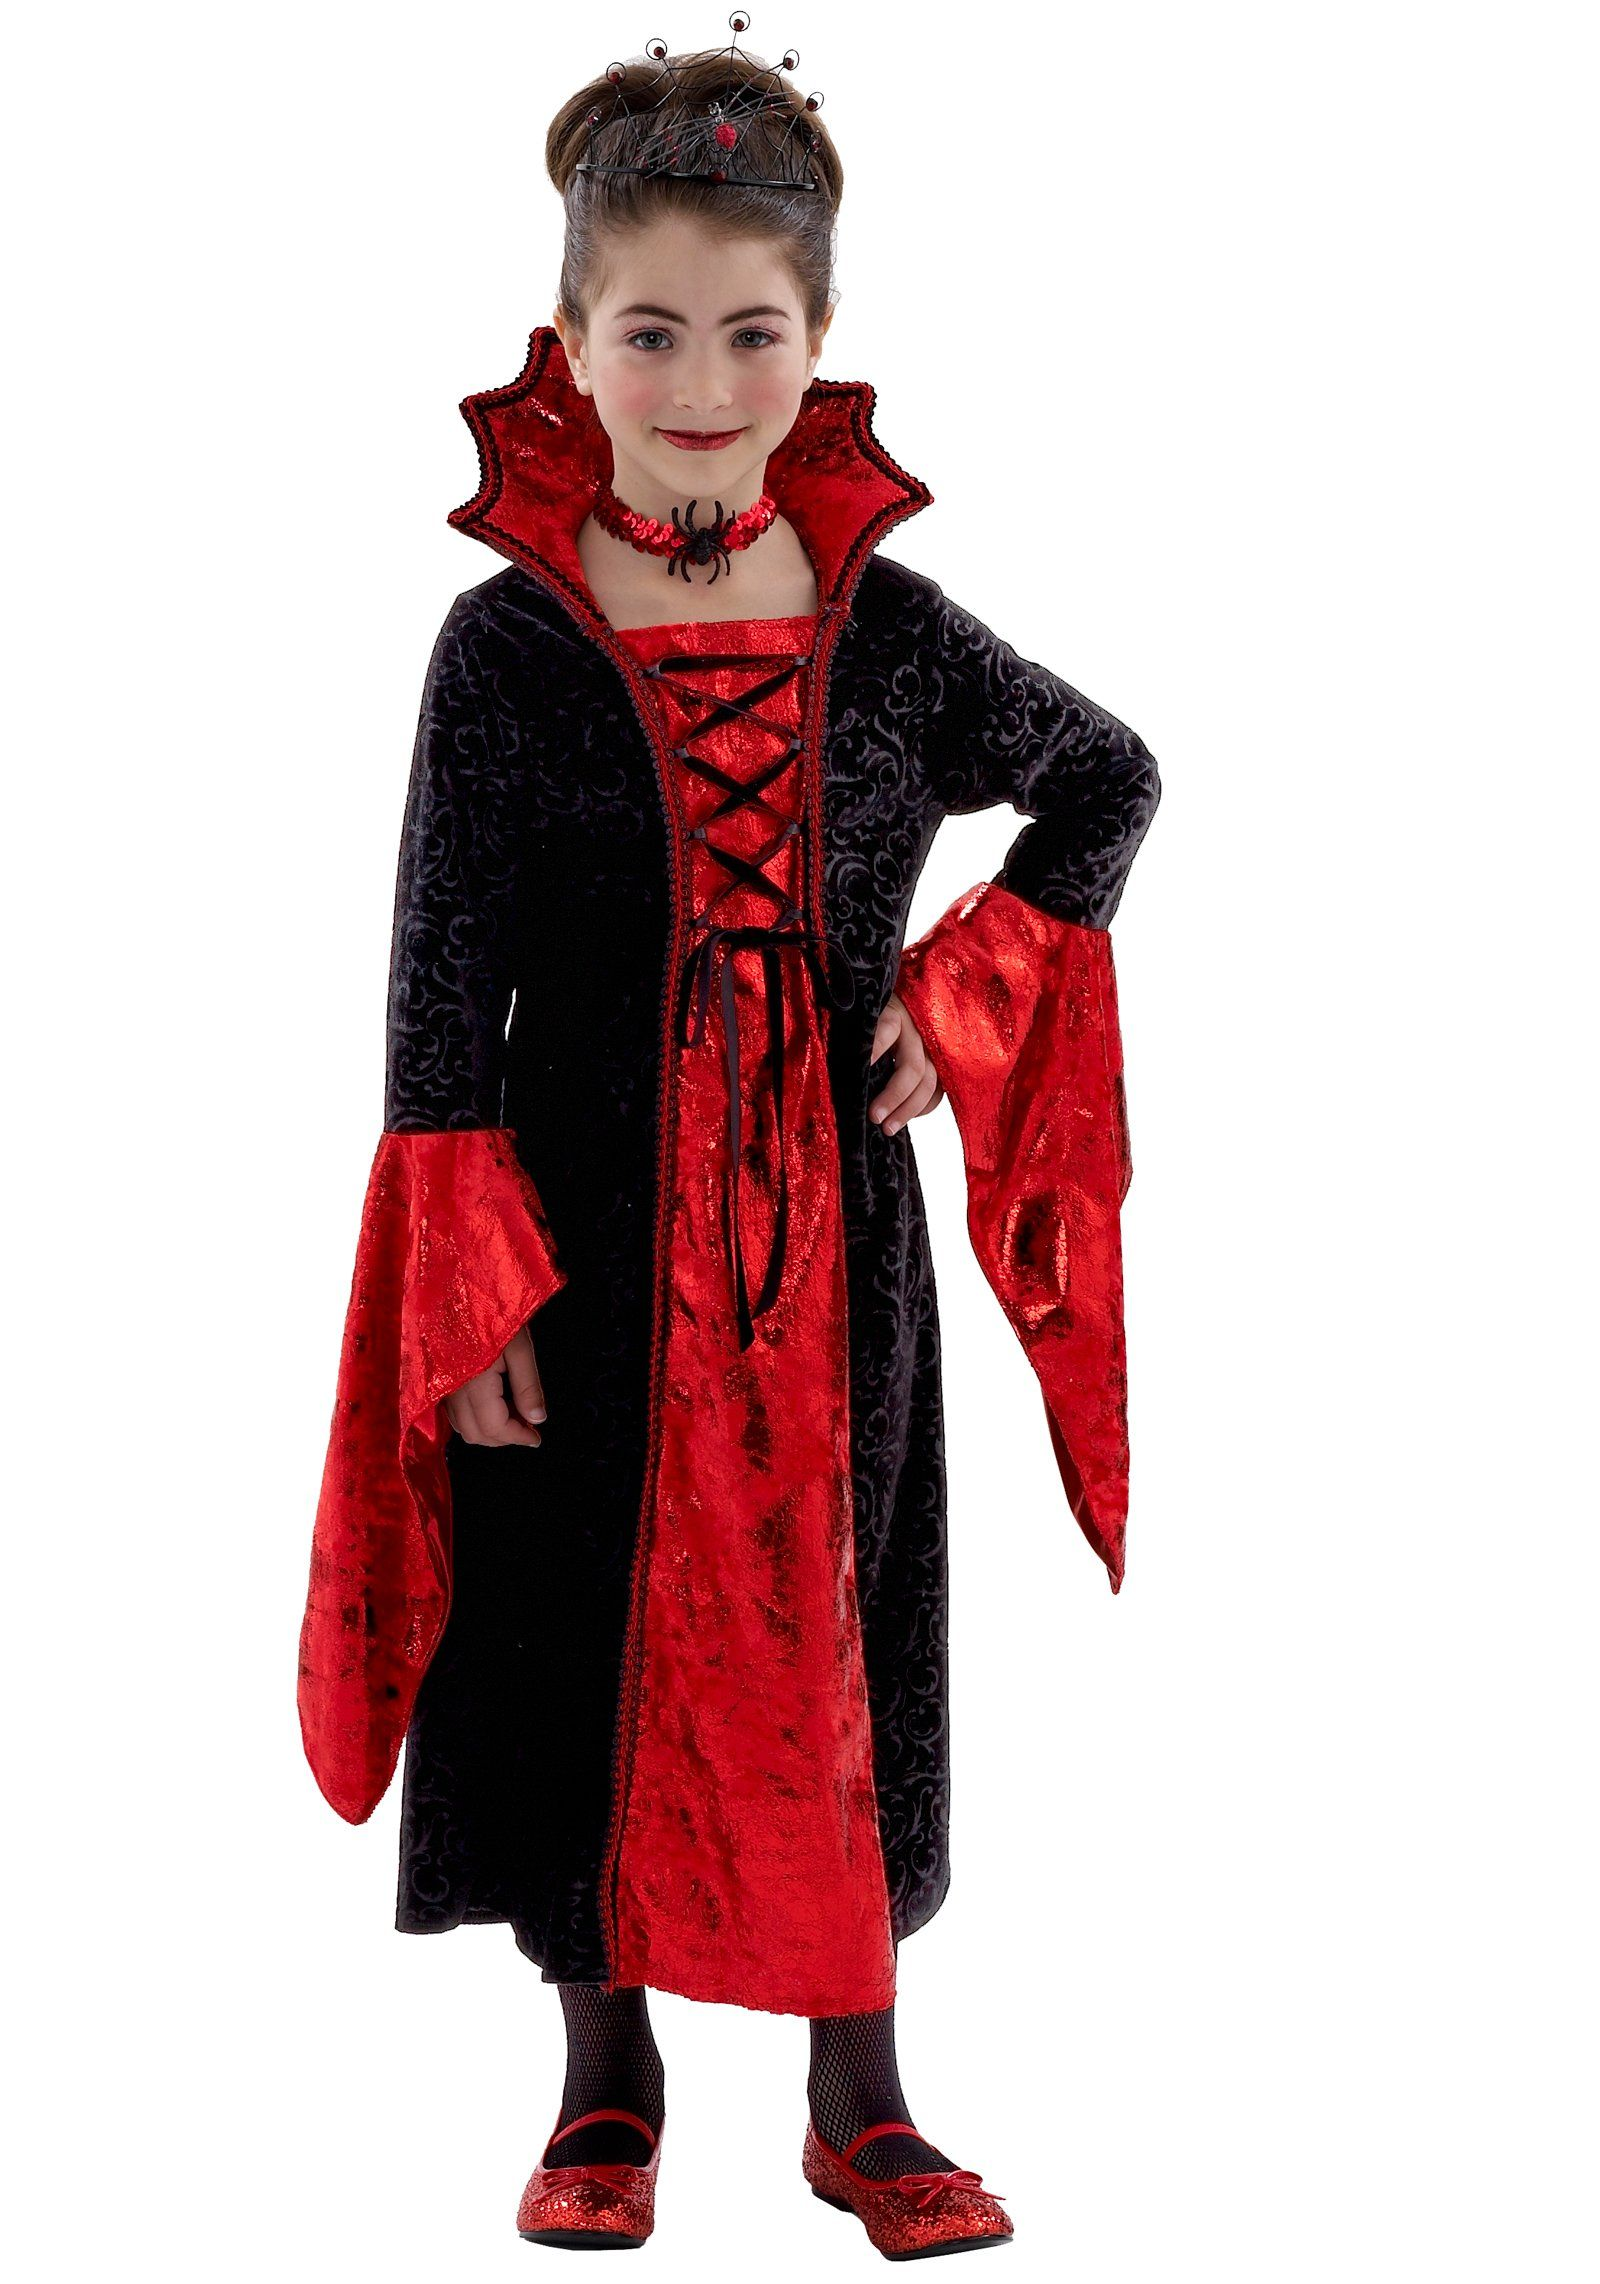 dracula mistress child costume from buycostumescom - Halloween Dracula Costumes